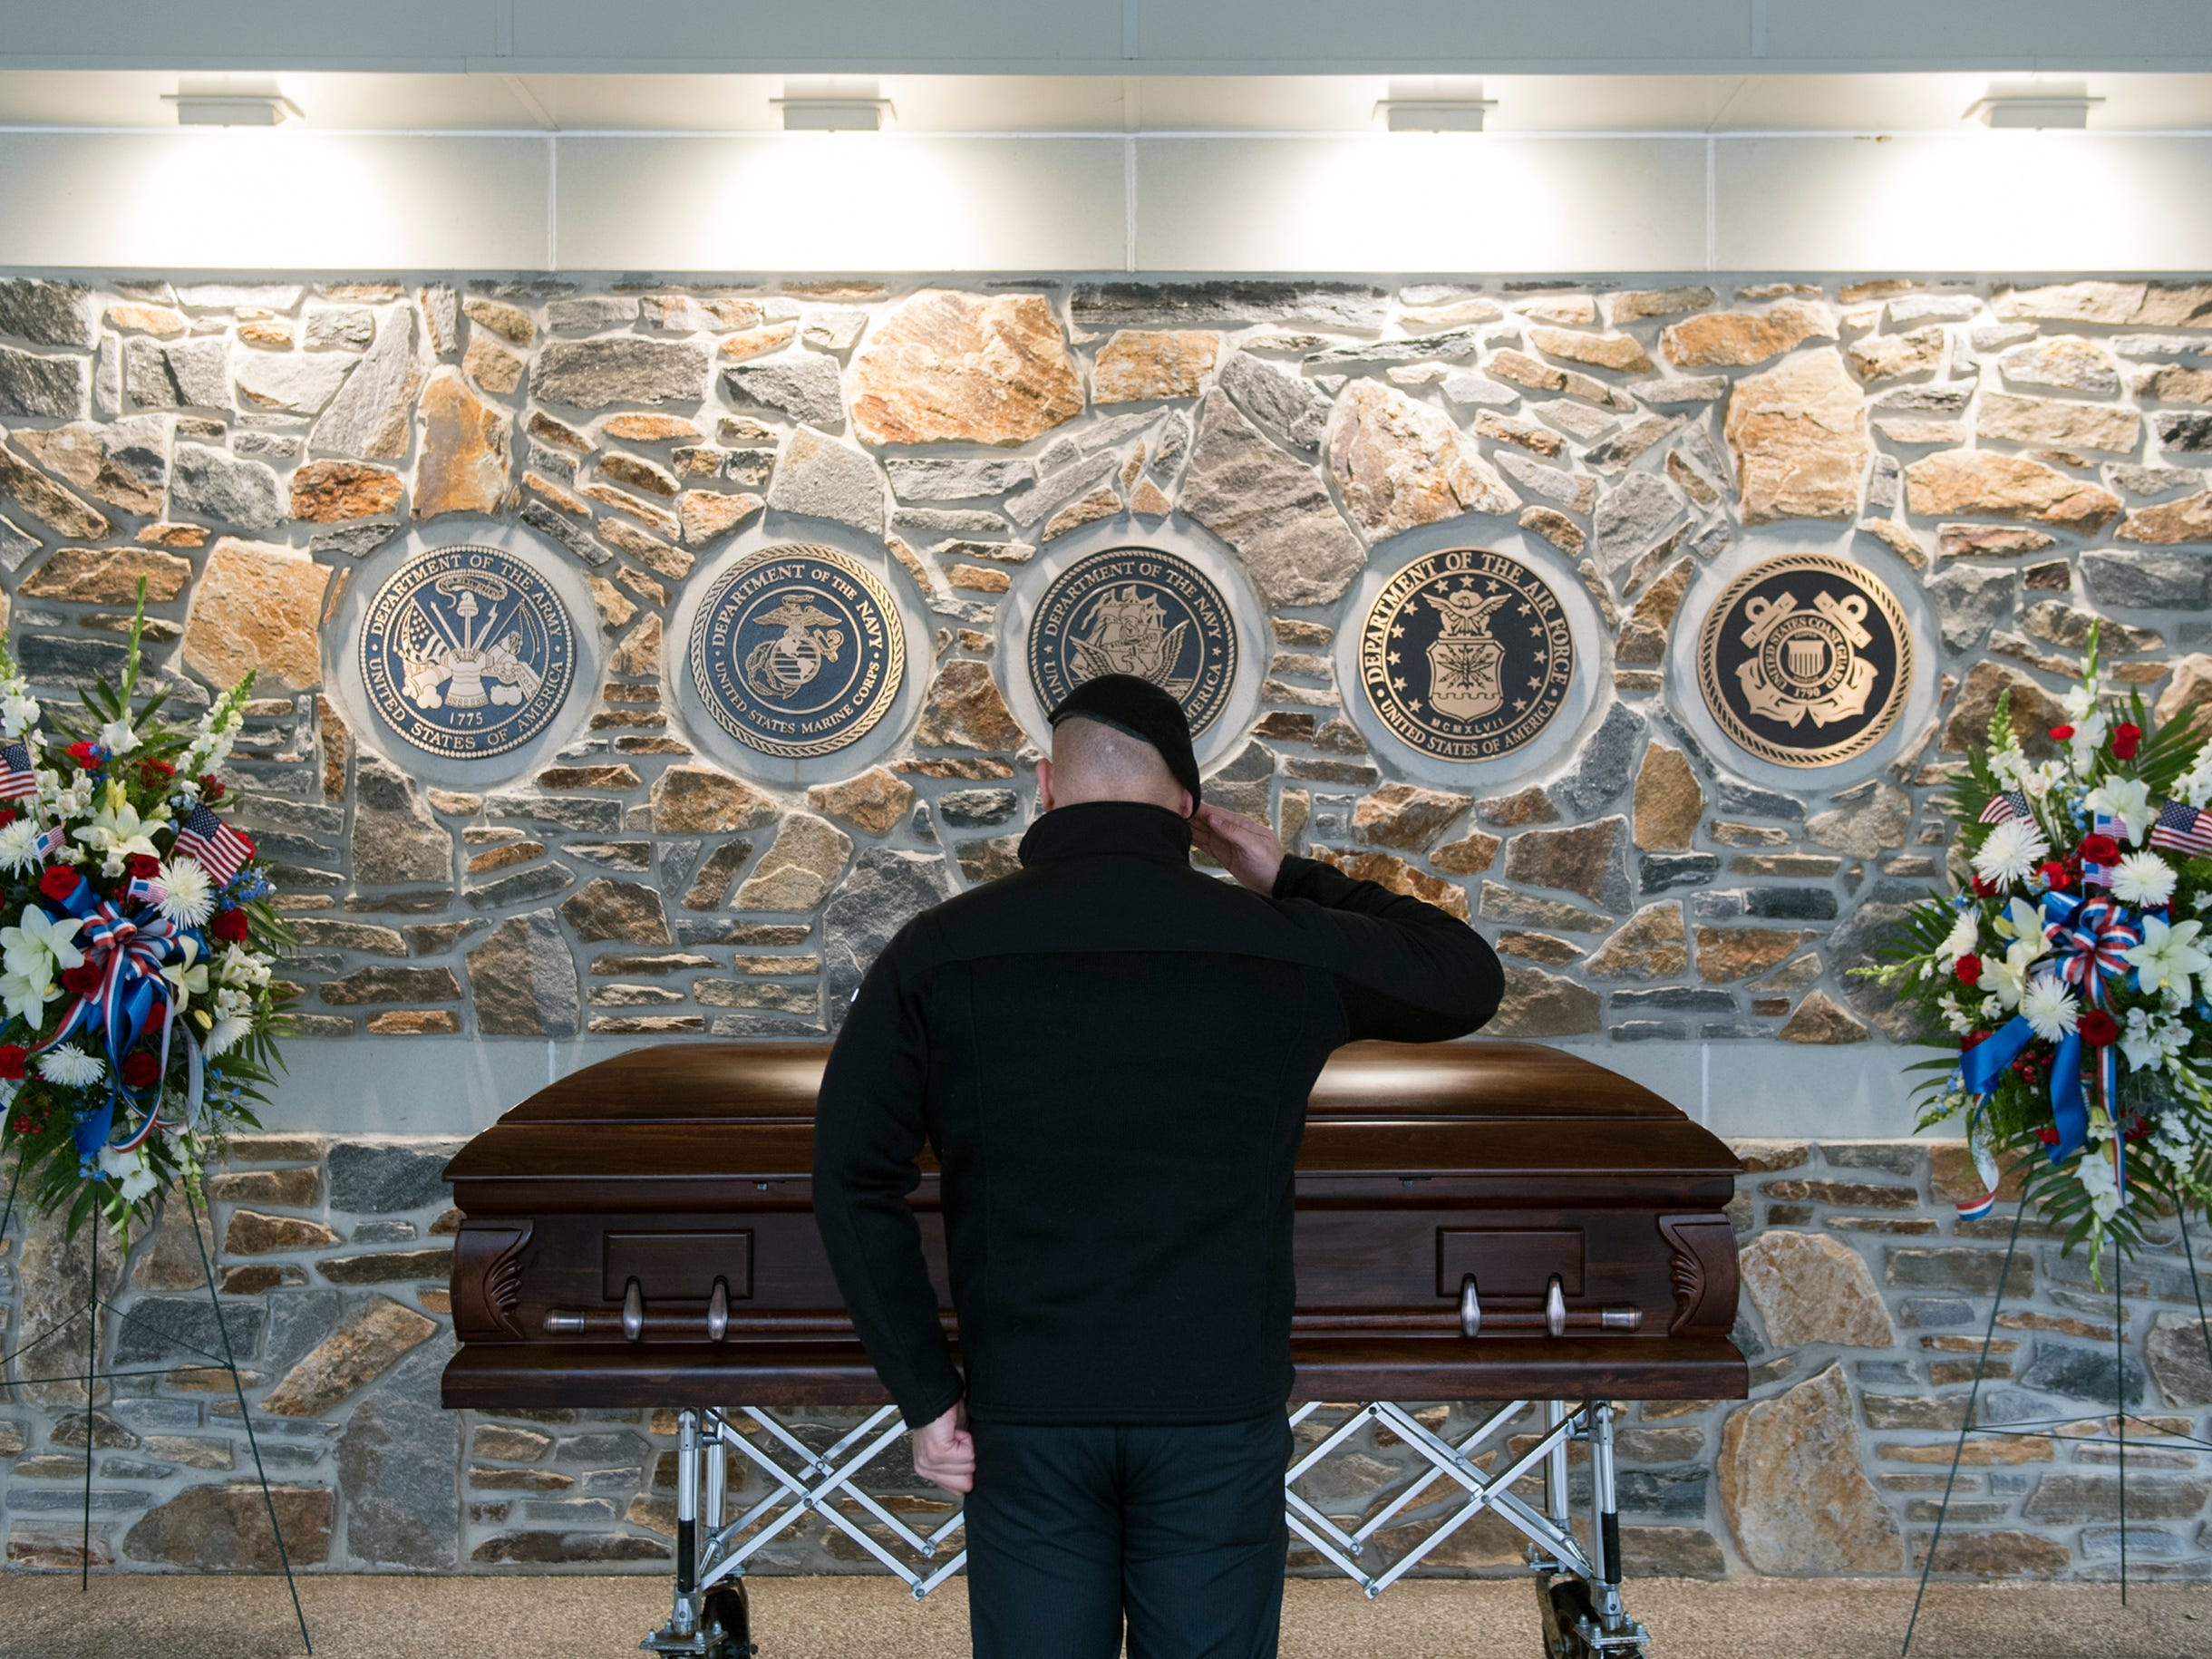 Former Army Captain Rogers Ramirez salutes Vietnam veteran Peter Turnpu as several hundreds gather for a funeral Friday, Jan. 18, 2019 in North Hanover, N.J.